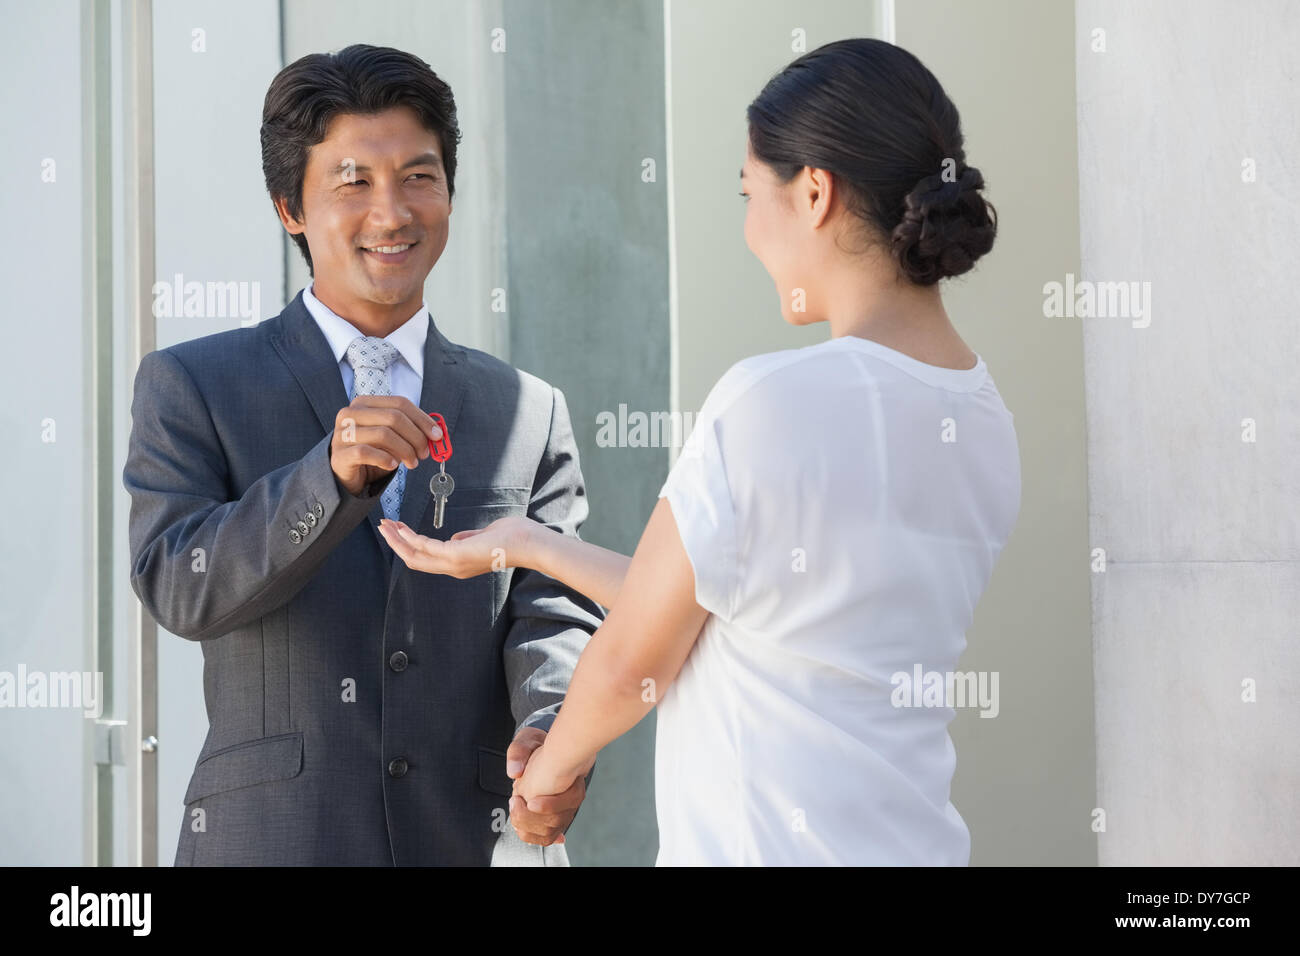 Smiling estate agent giving the key to buyer - Stock Image